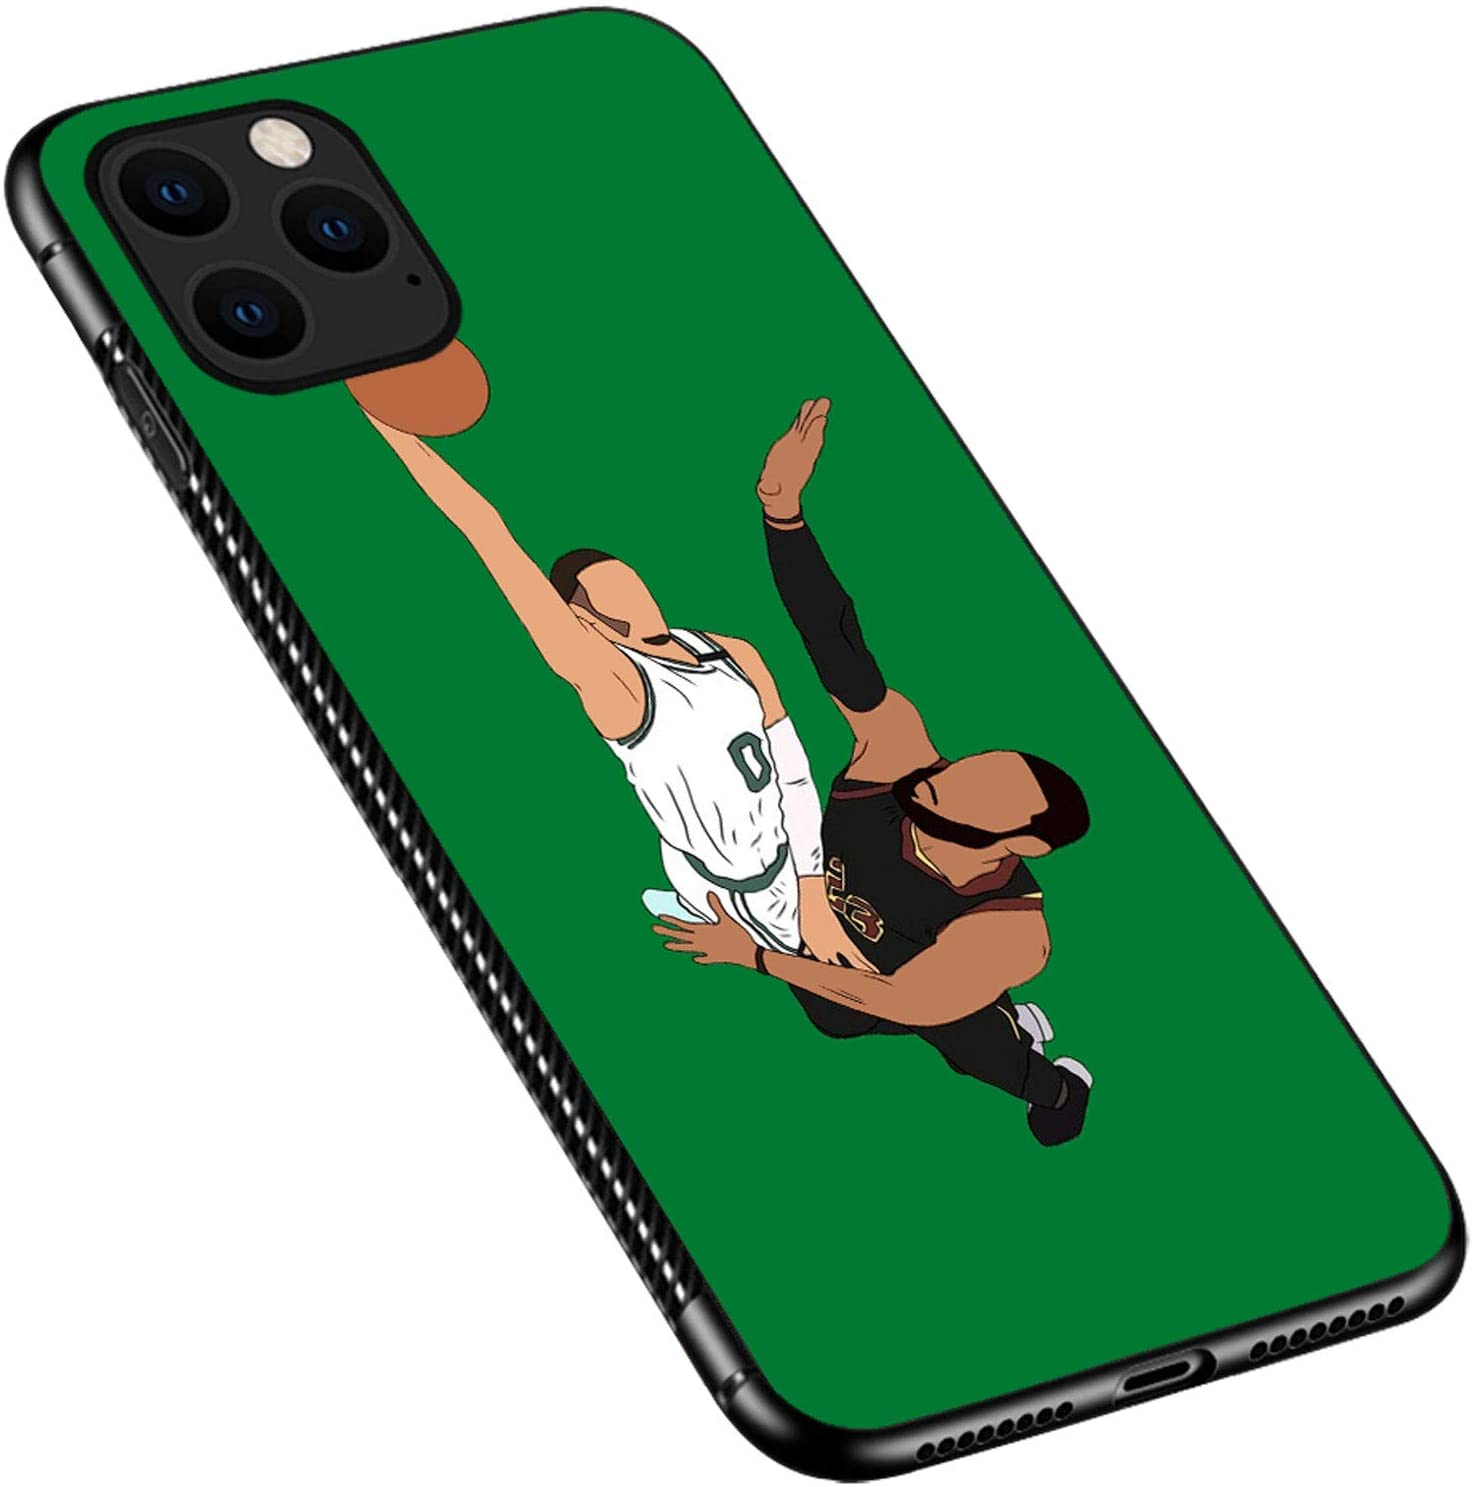 iPhone 12 Pro Case,Basketball Competiton iPhone 12 Pro Cases for Girls Boys,Pattern Design Shockproof Non-Slip Case for Apple iPhone 12/12 Pro